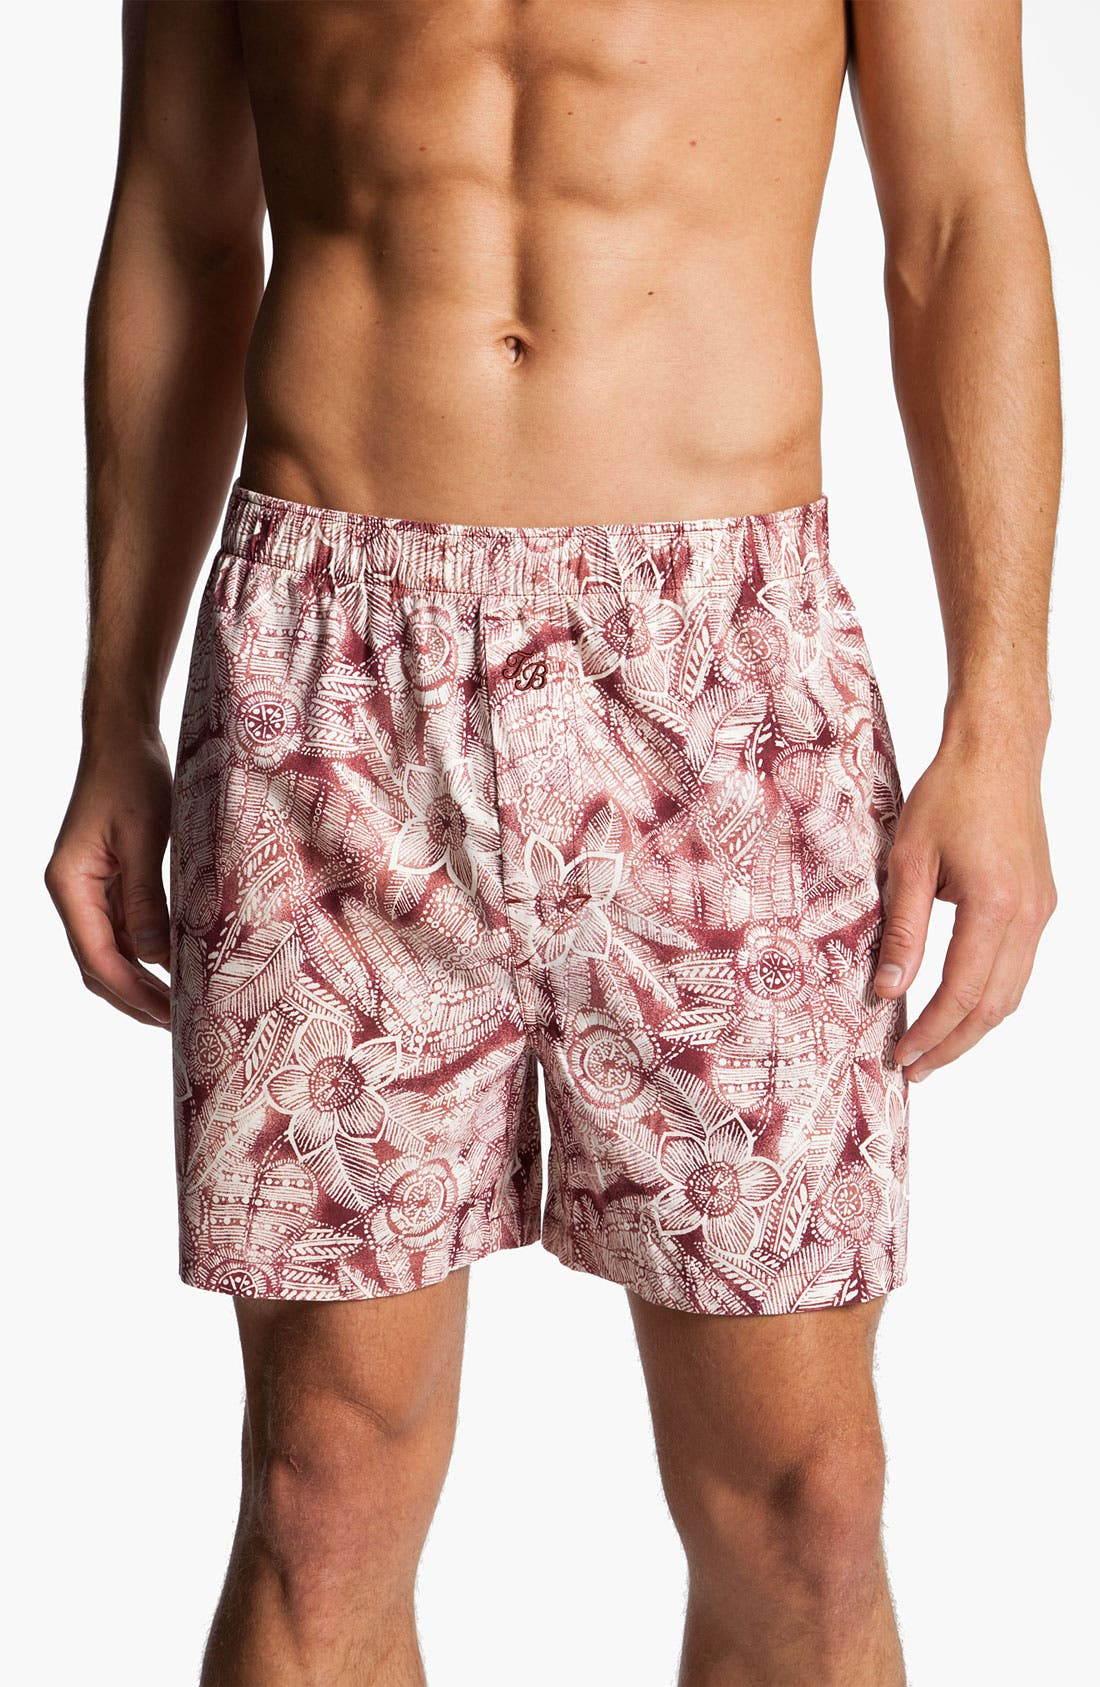 Alternate Image 1 Selected - Tommy Bahama Print Cotton Boxers (Assorted 2-Pack)